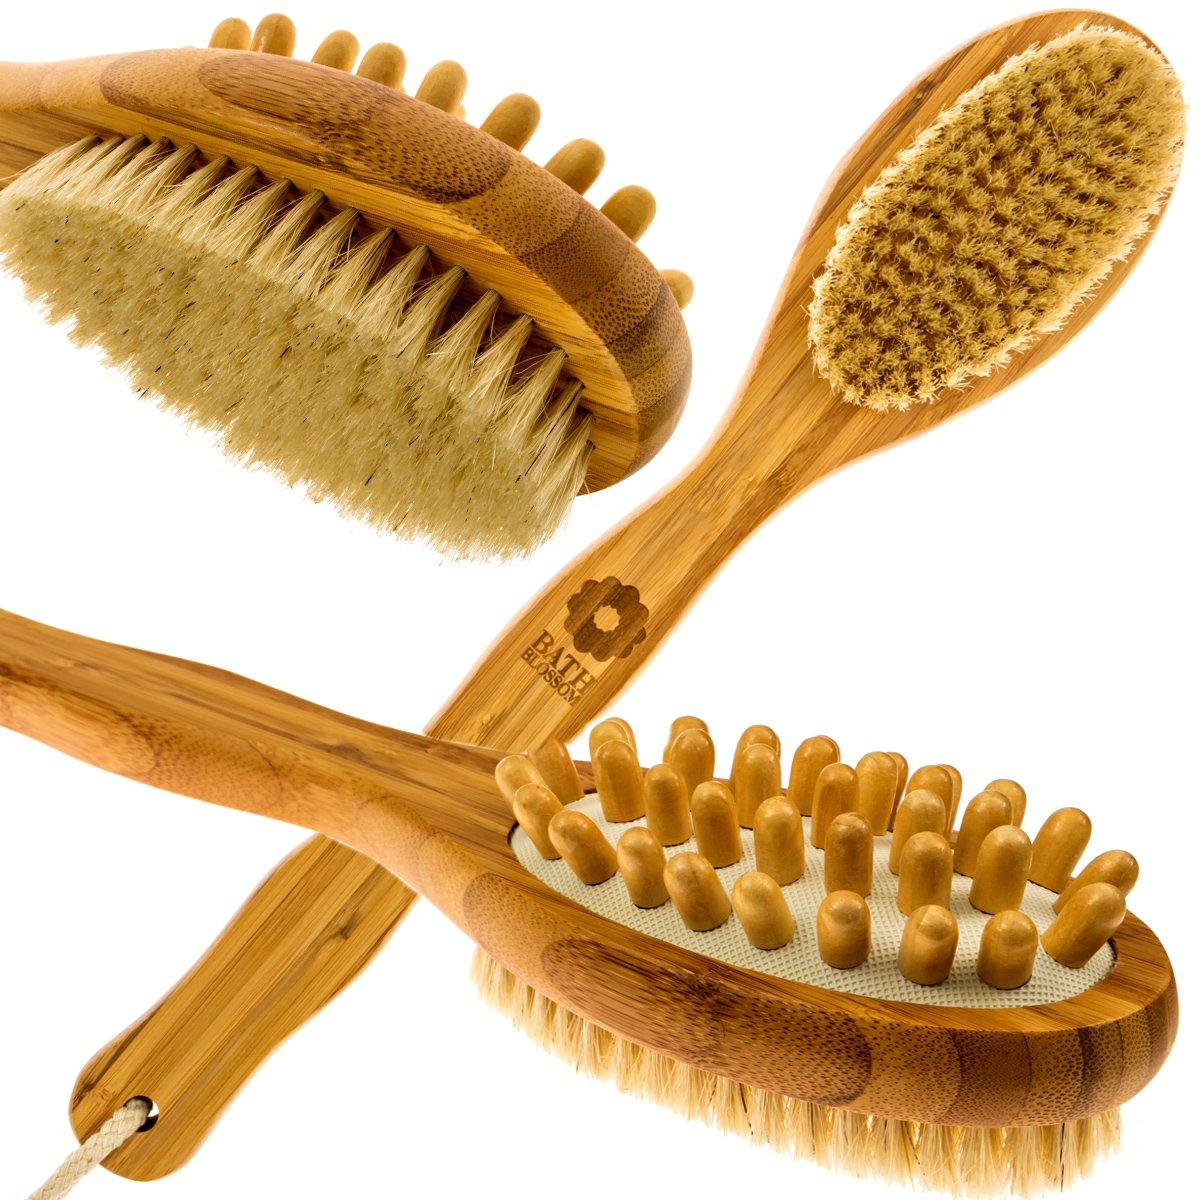 Bath Blossom Bamboo Body Brush for Back Scrubber - Natural Bristles Shower Brush with Long Handle - Excellent for Exfoliating Skin and Cellulite - Use Wet or Dry - Suitable for Men and Women